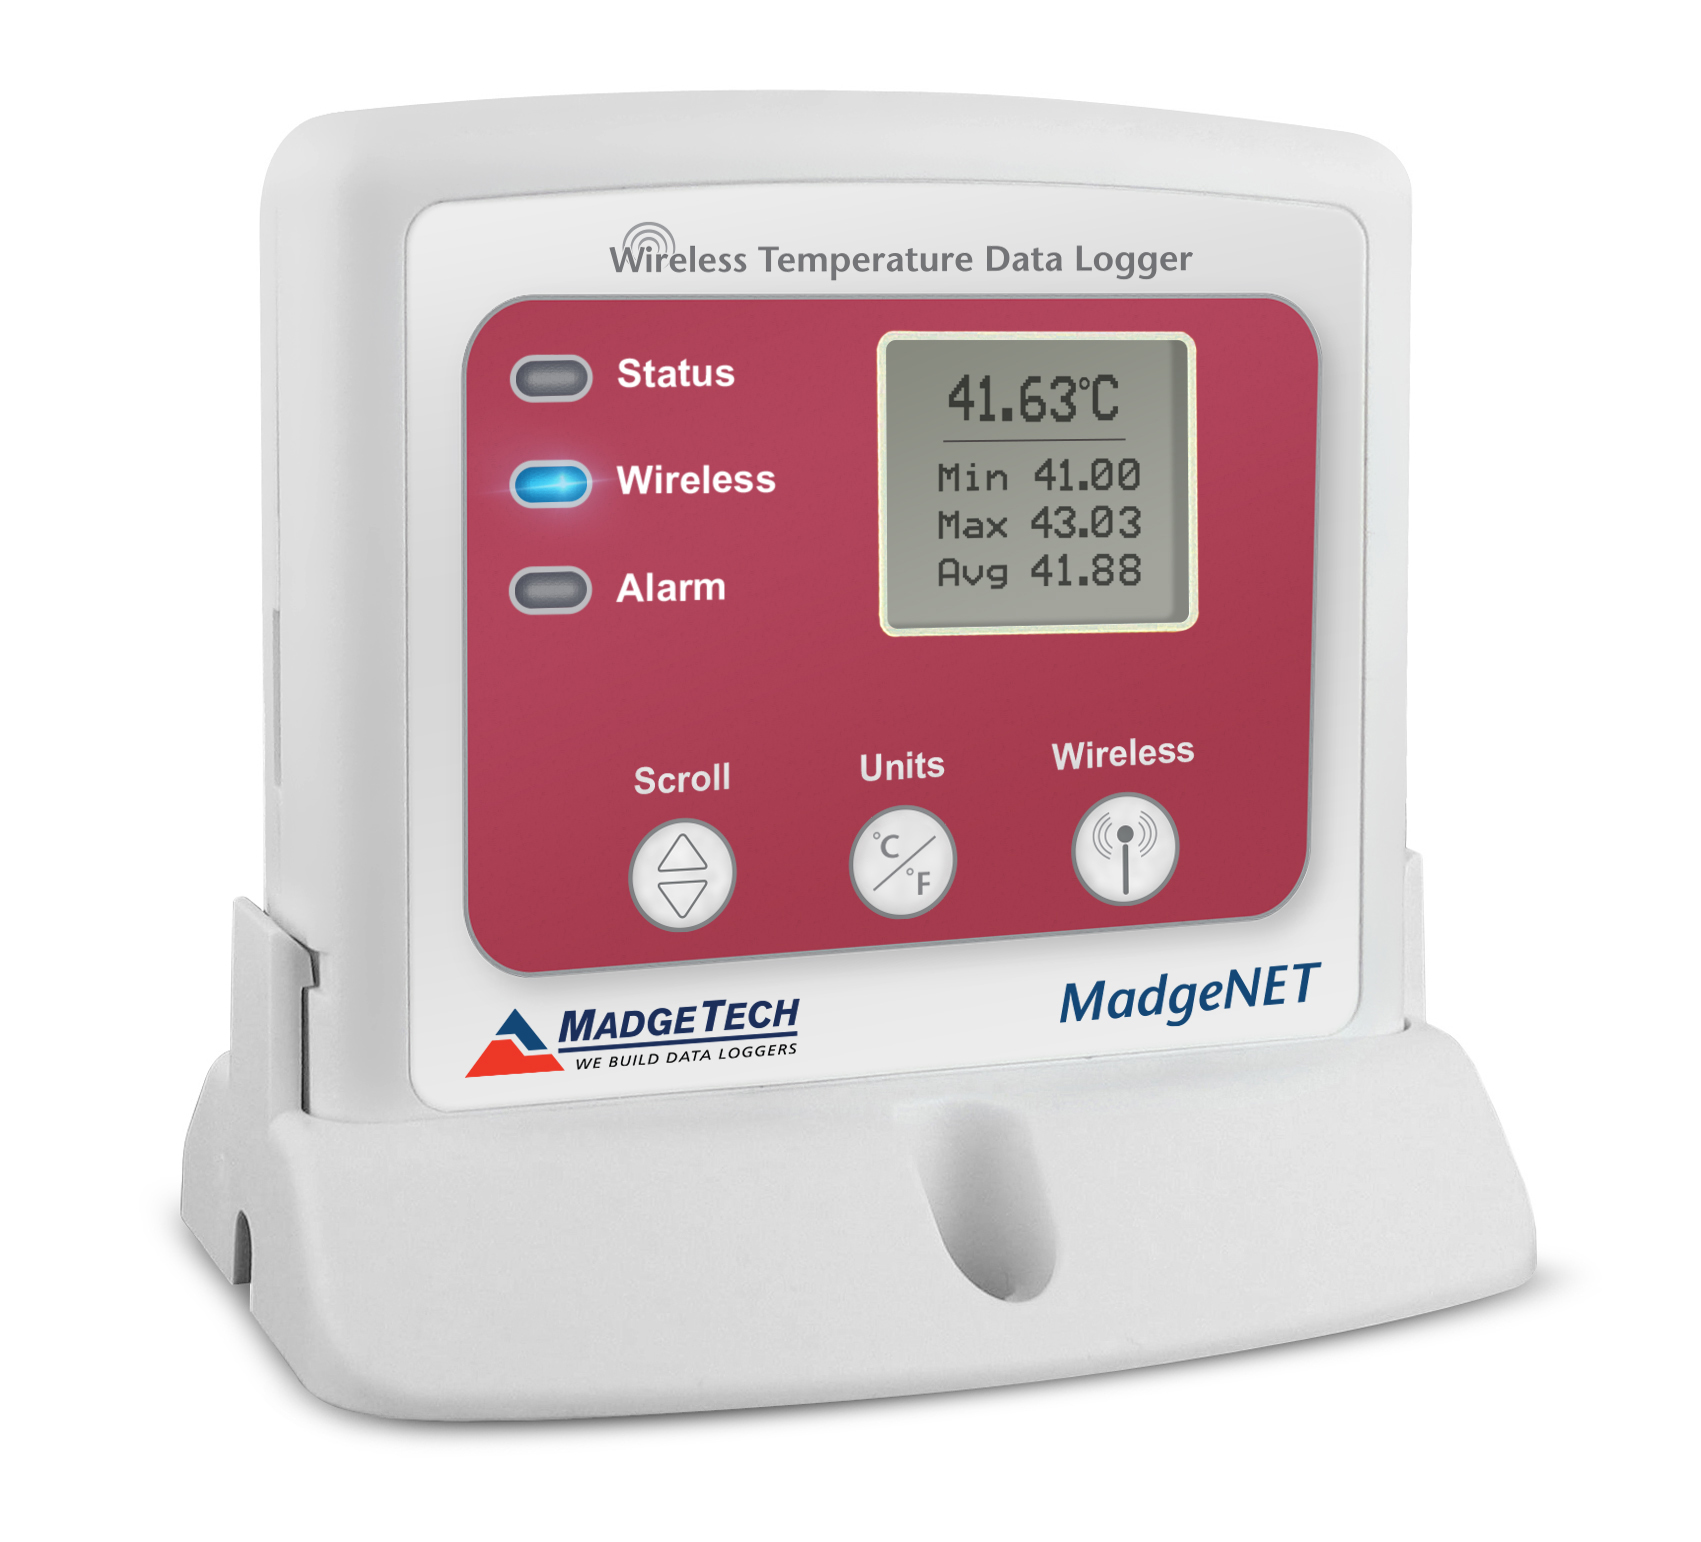 Benefits of the RFTemp2000A Wireless Temperature Data Logger